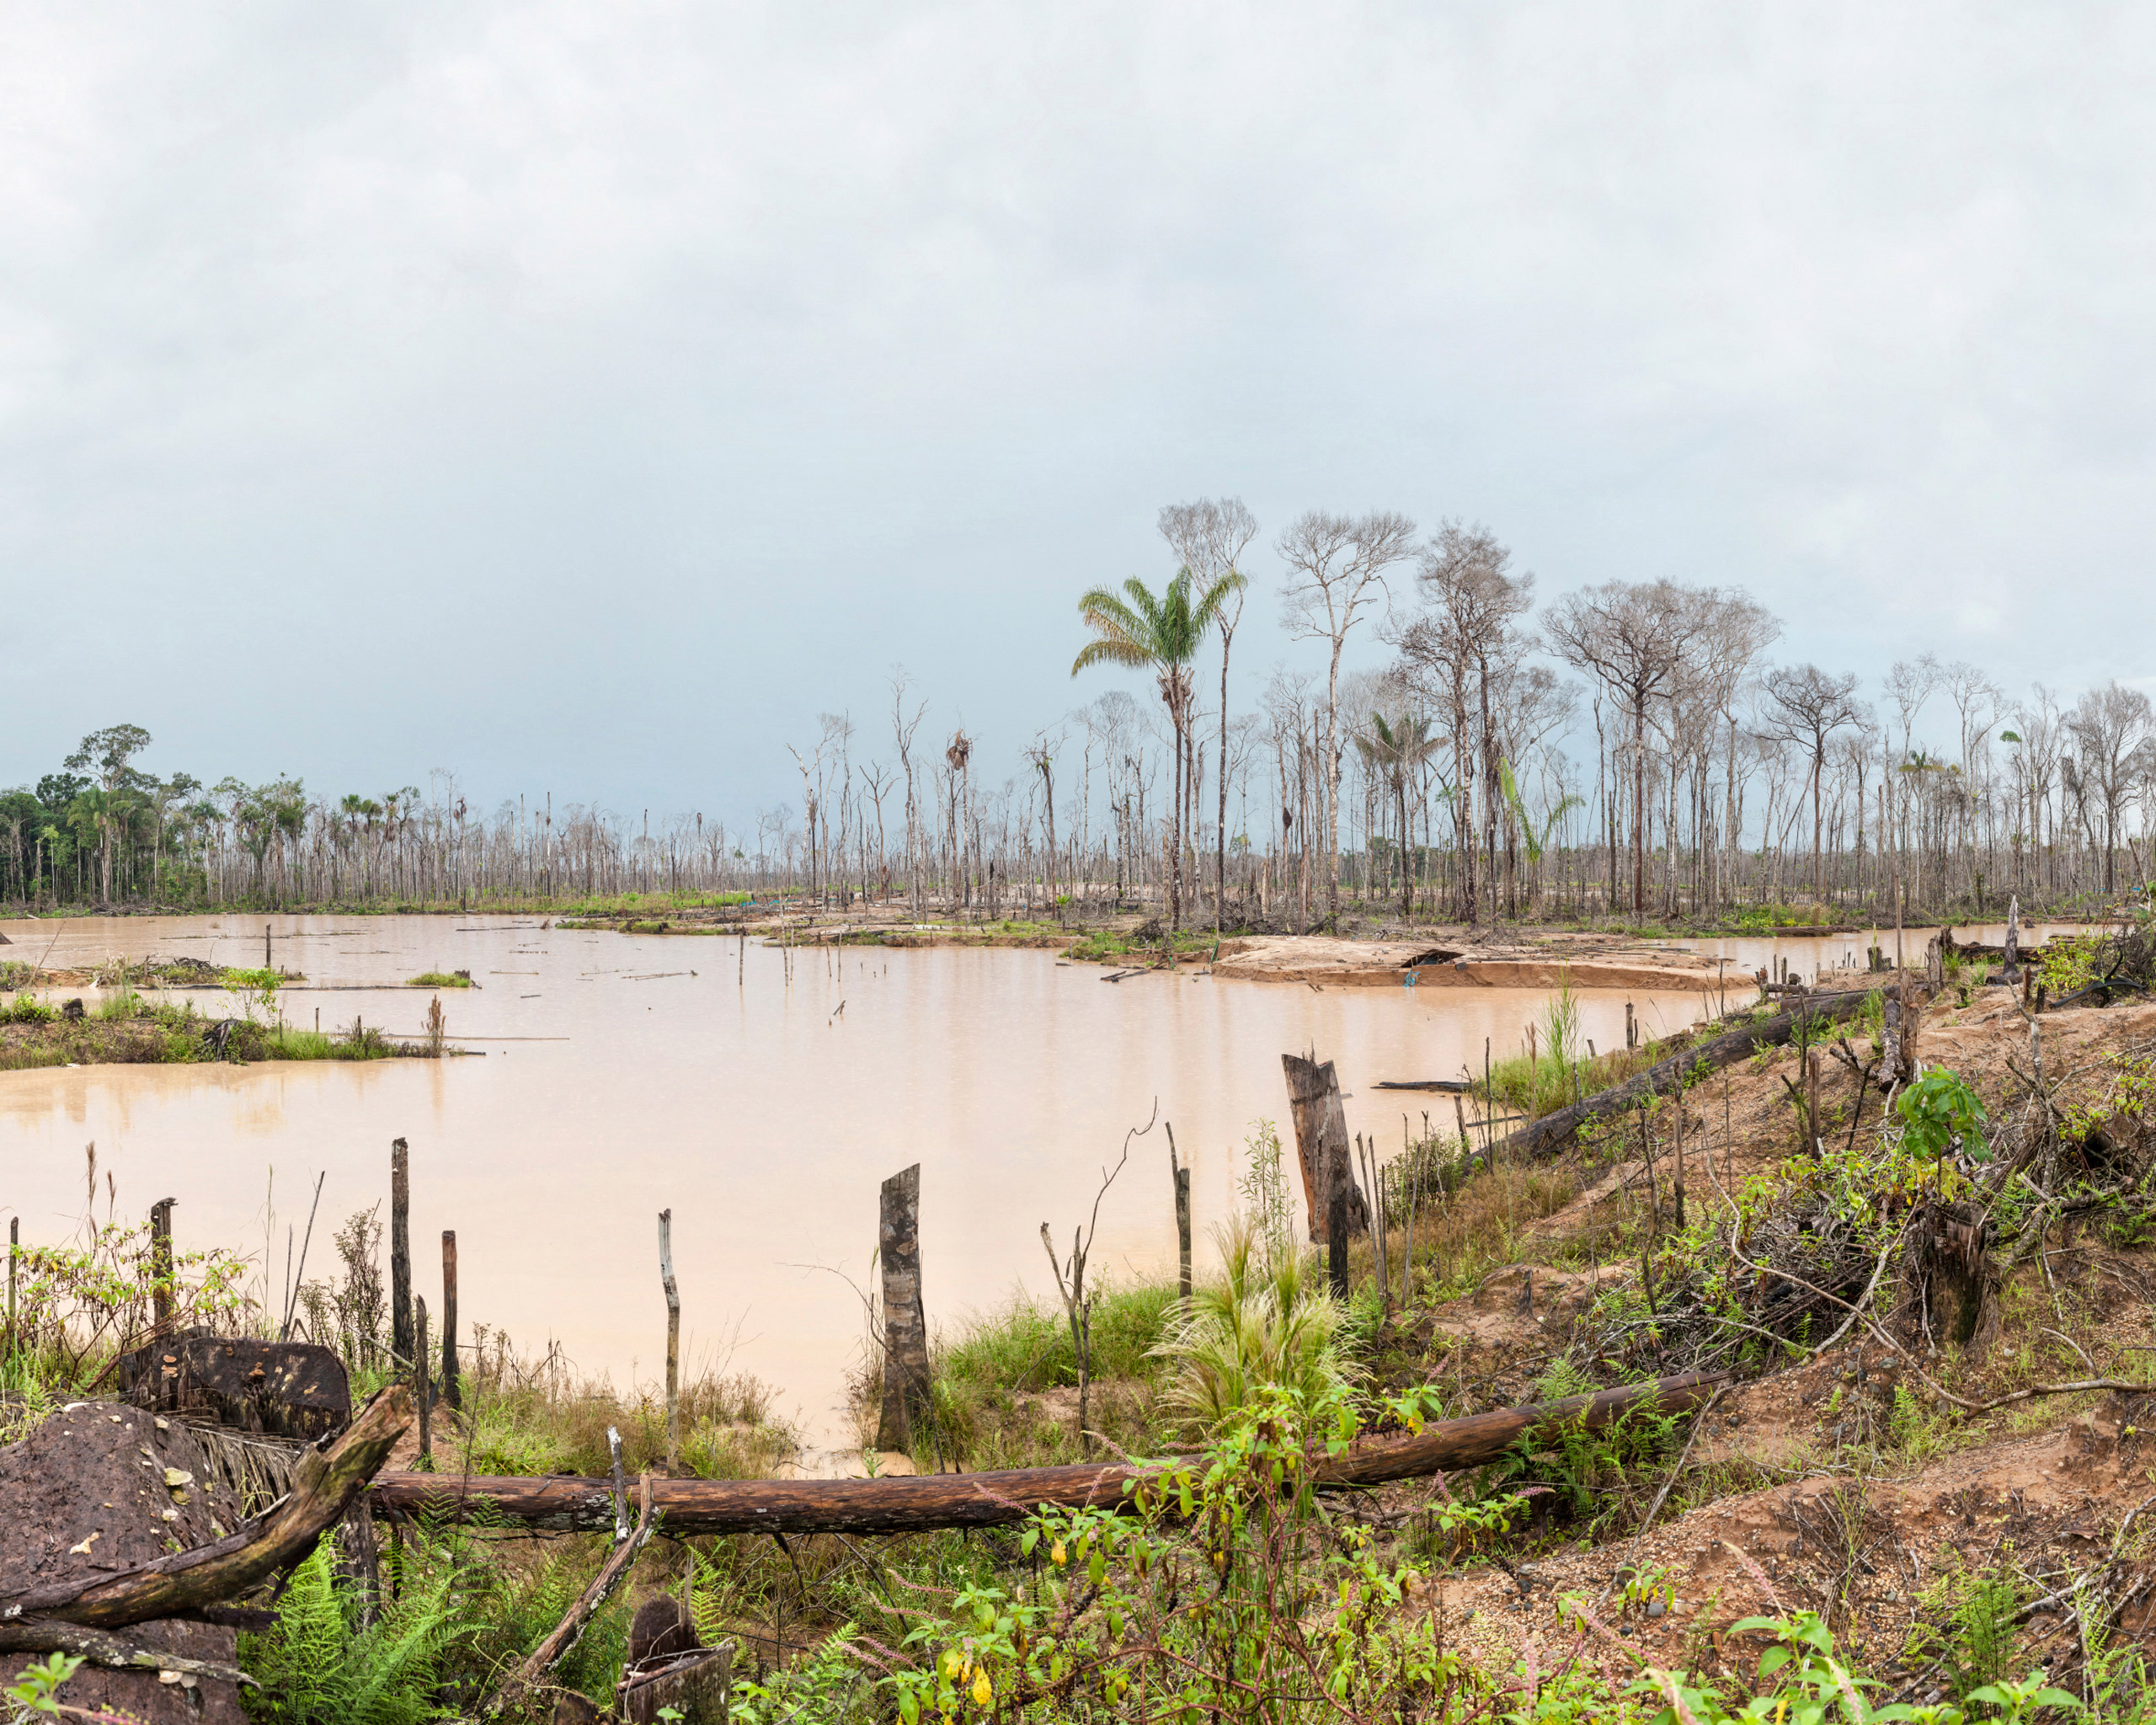 Illegal mining in Madre de Dios, Peru, is devastating the jungle and natural environment.